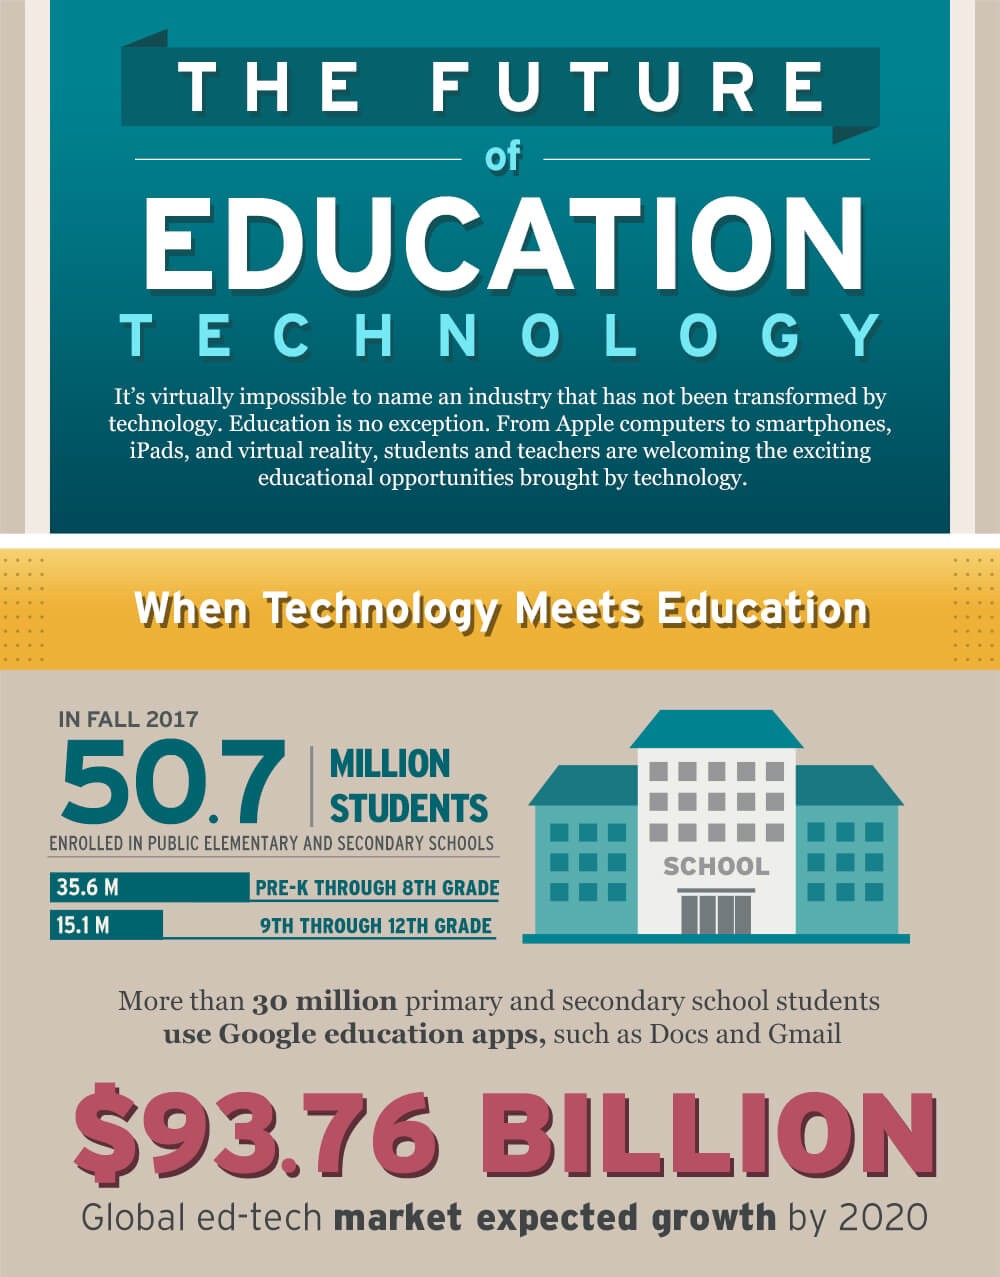 Trends In Education 2020.The Future Of Education Technology Trends In Higher Education